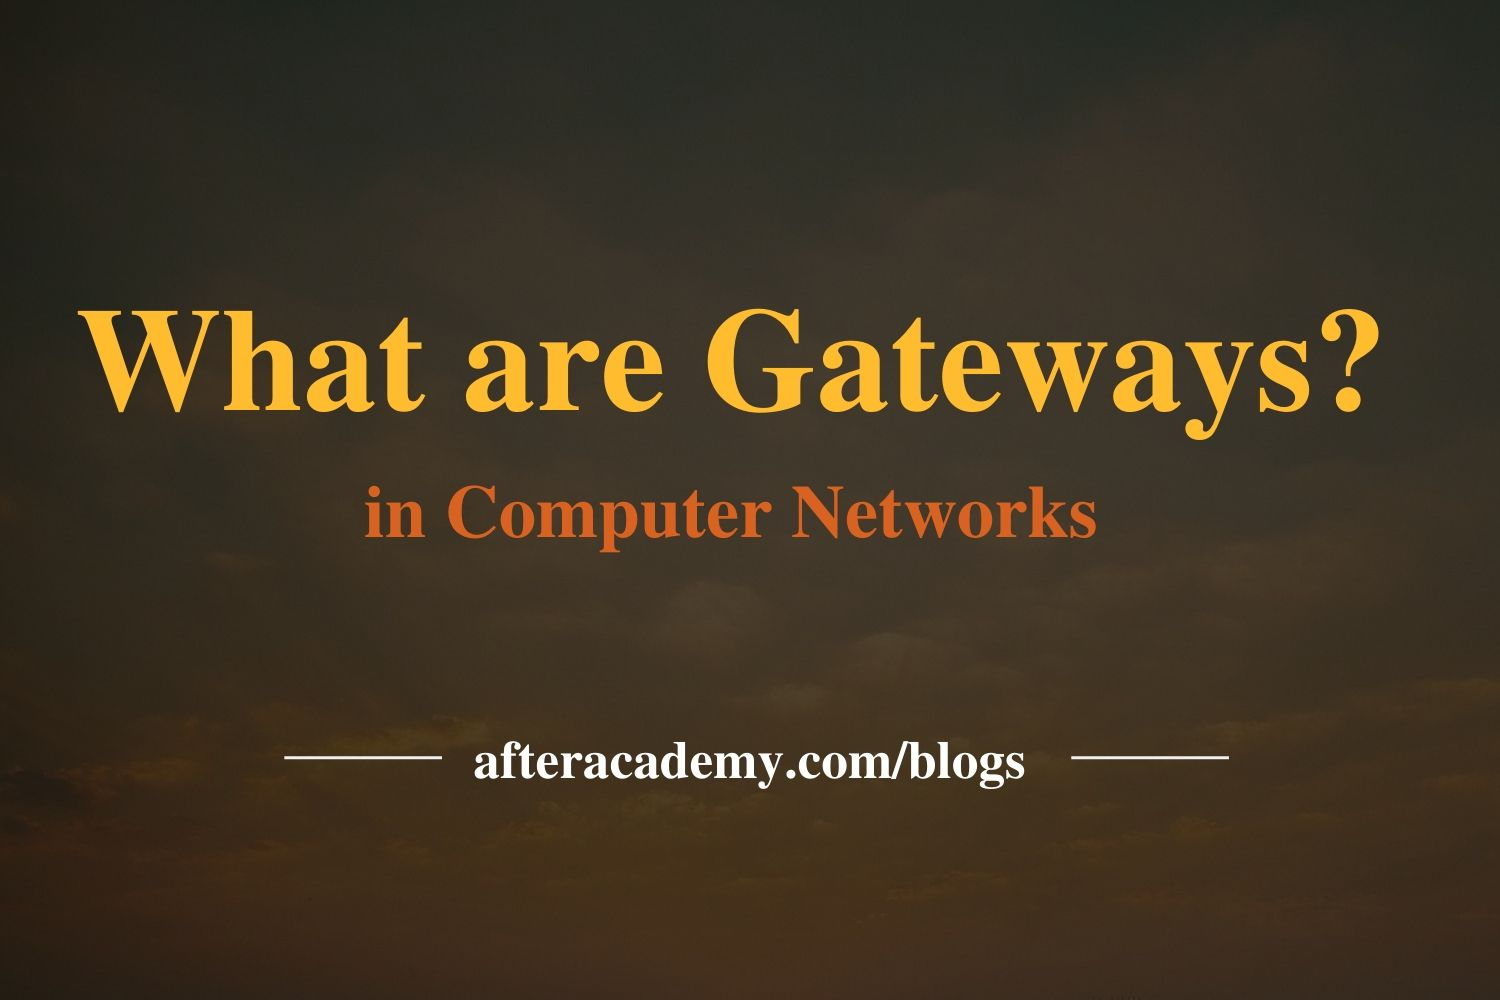 What are Gateways?